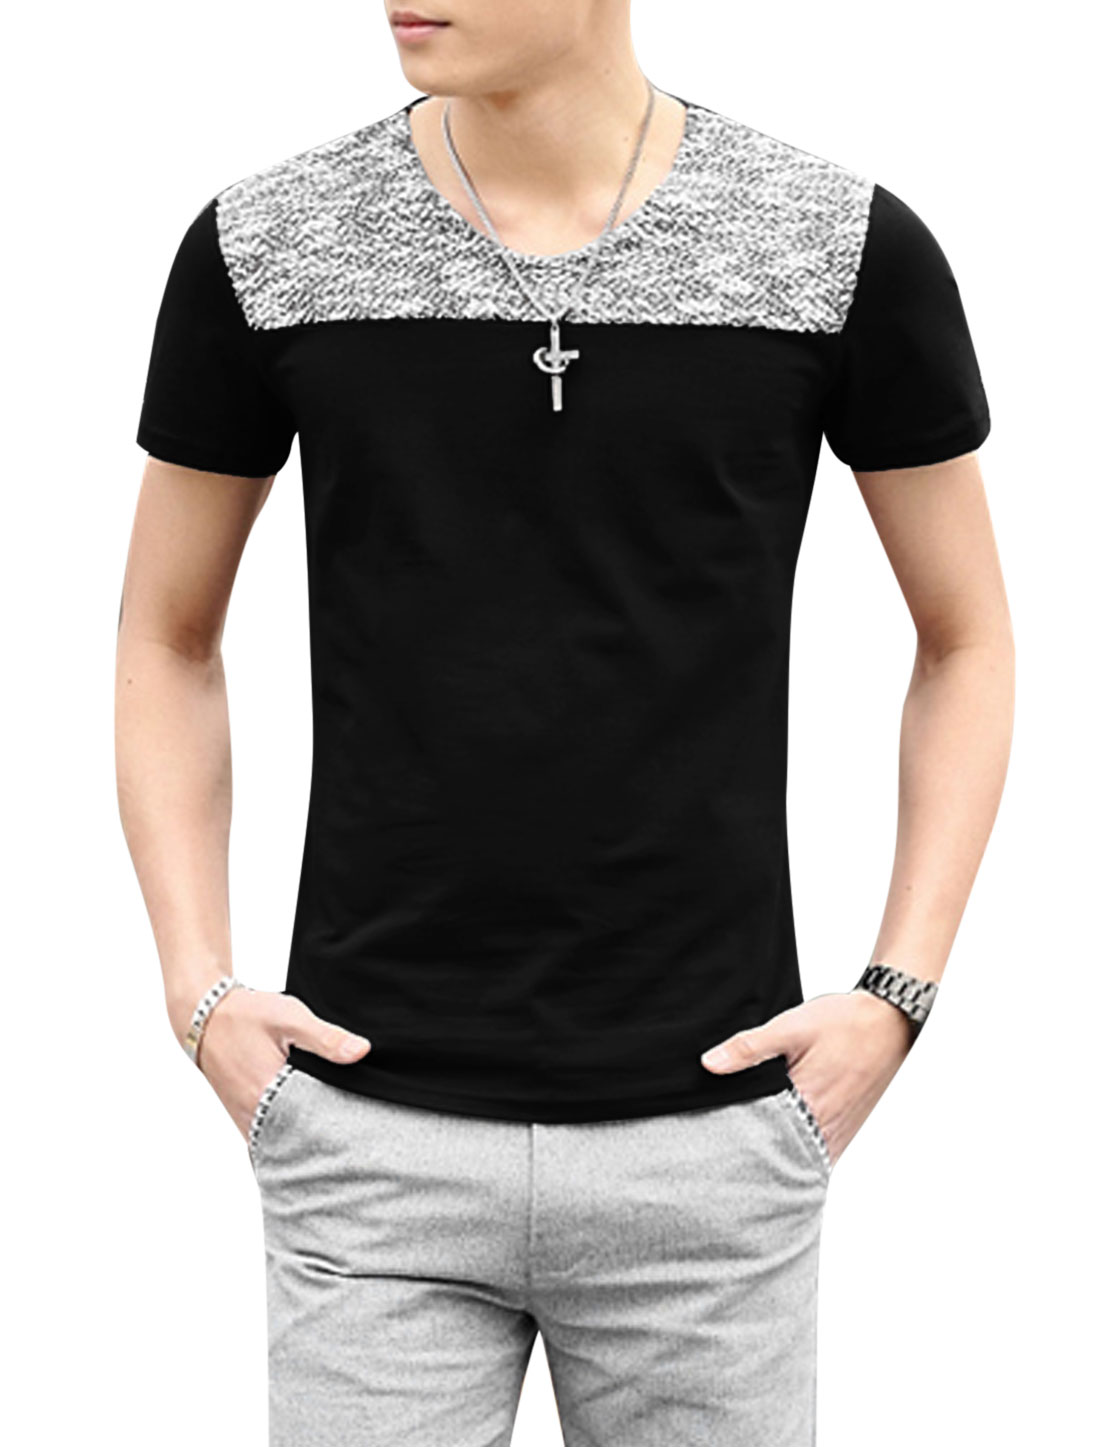 Men Short Sleeve Panel Contrast Color Casual T Shirts Black M